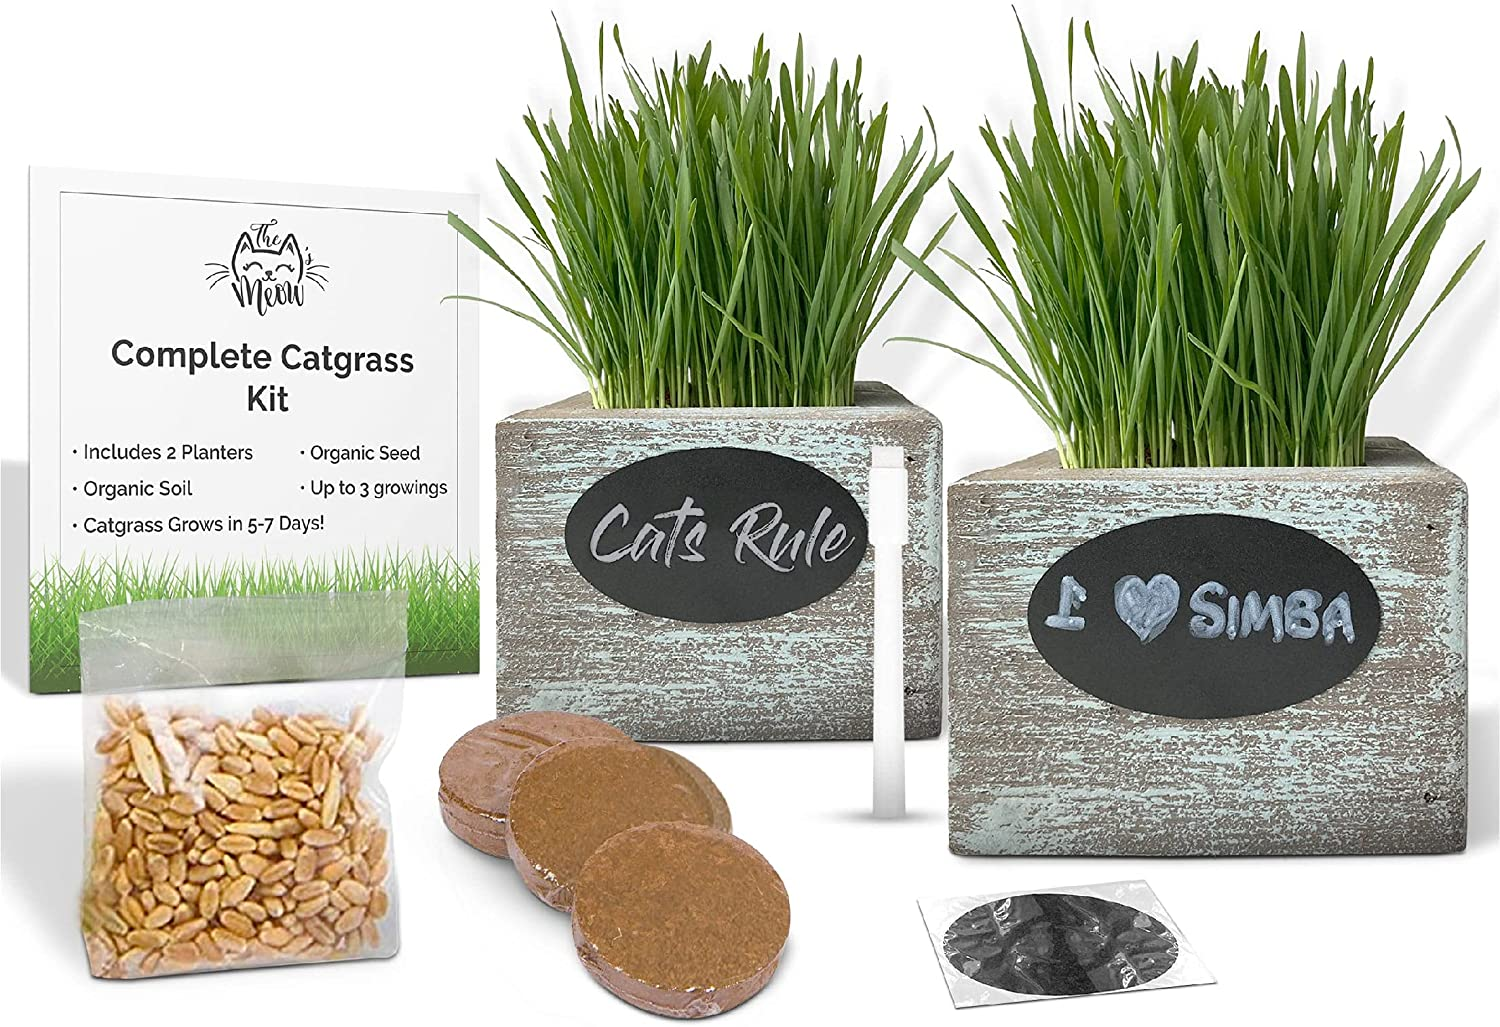 Some reservation Organic Cat Grass Seeds Complete Free Shipping Kit - 3 Growing' Soil Seed for